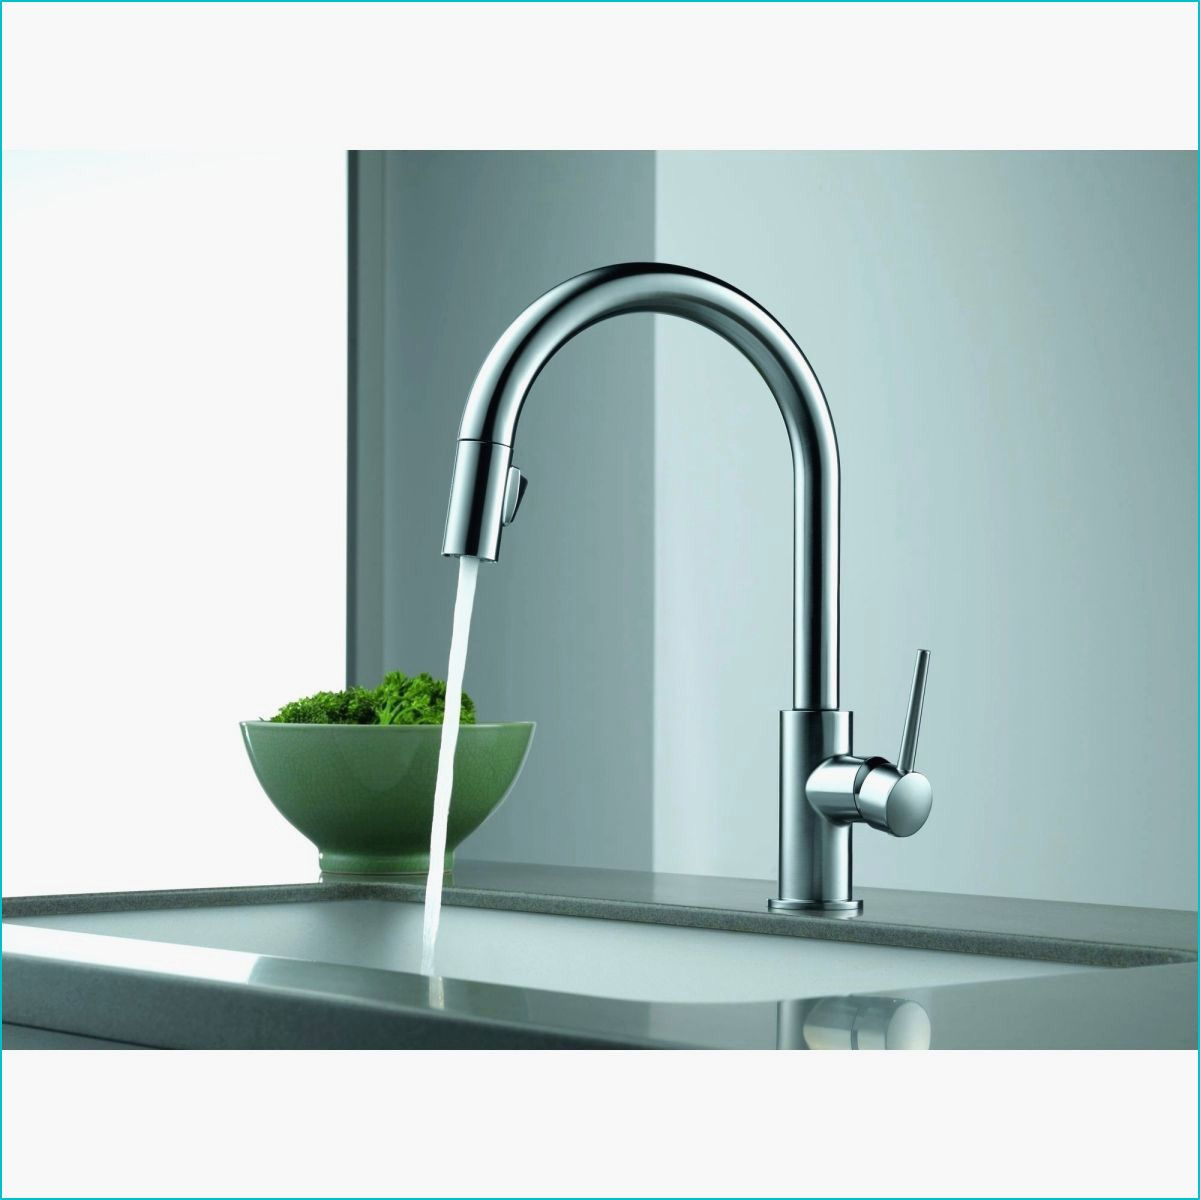 Fancy Water Filters For Sink In Attractive Home Decor Arrangement Ideas 52 With Water Filters For Best Kitchen Faucets Kitchen Faucet Stainless Kitchen Faucet